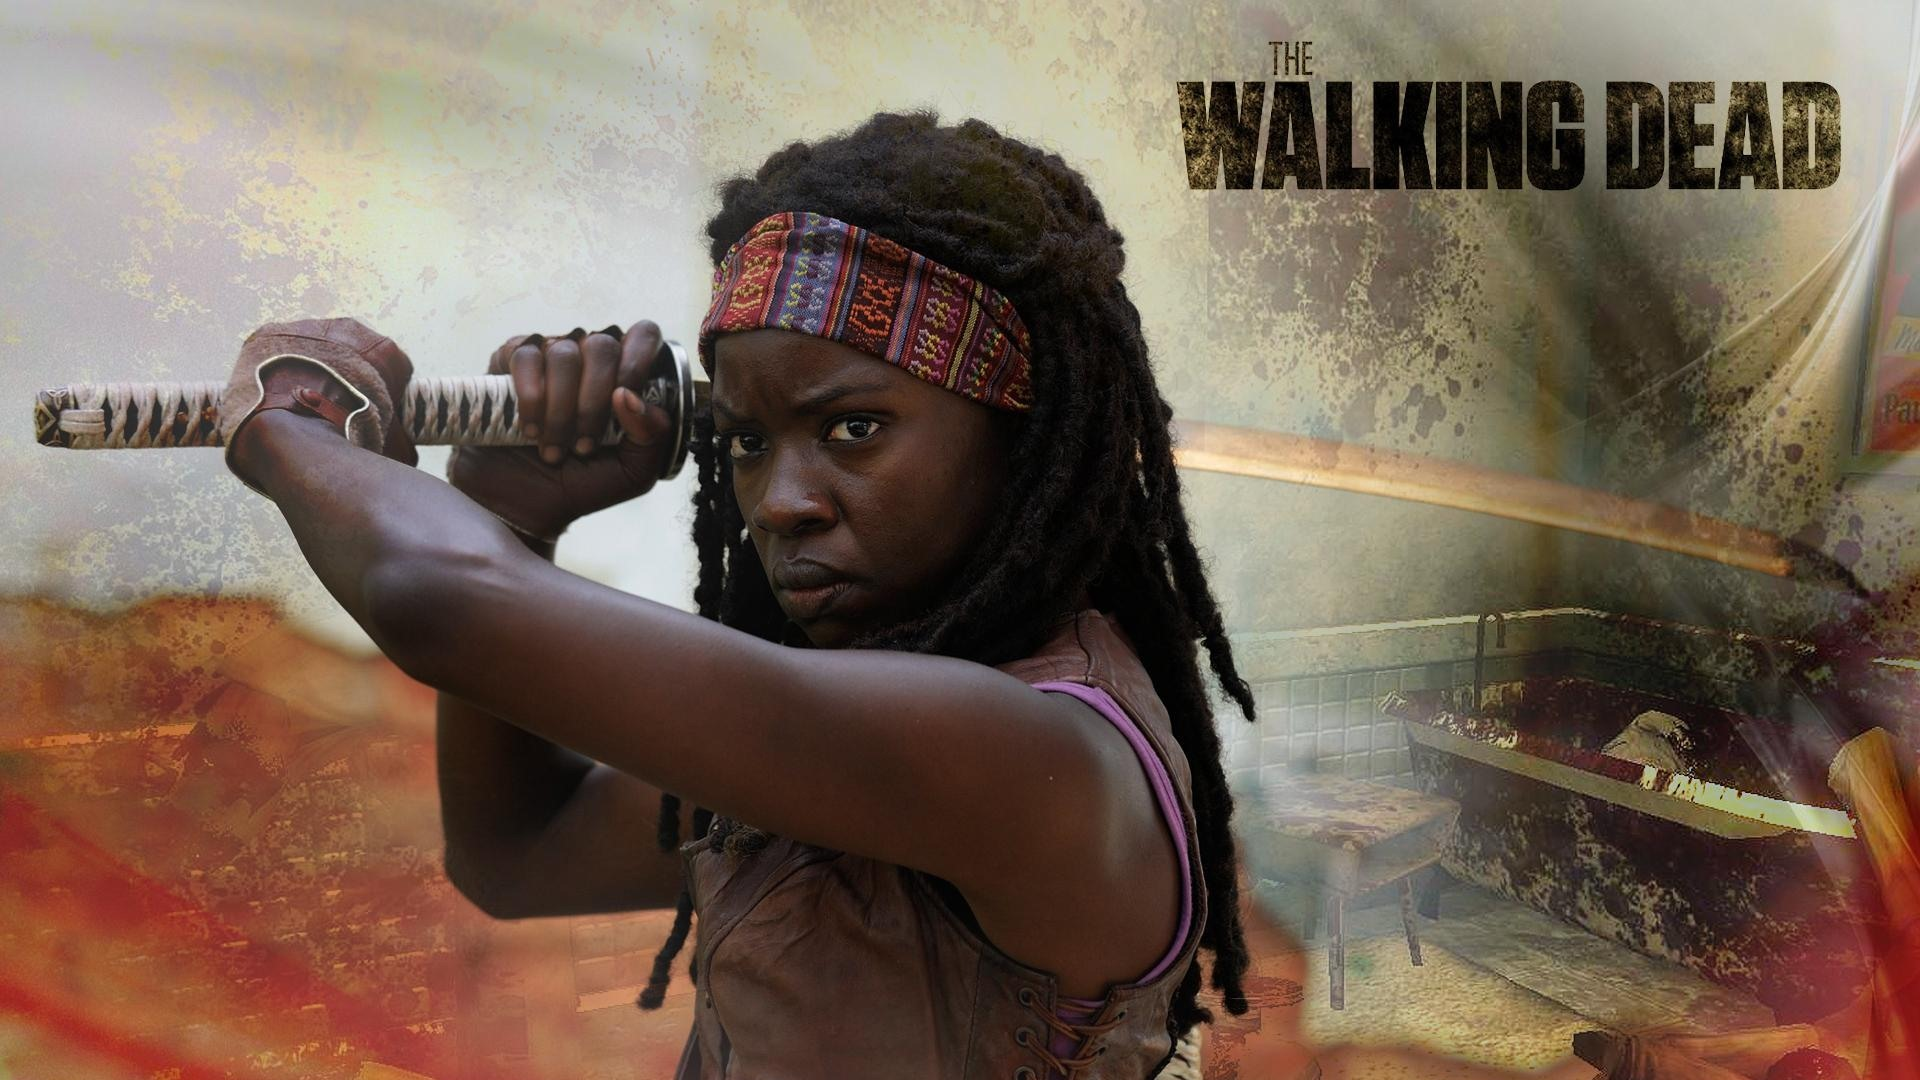 The Walking Dead wallpaper 11